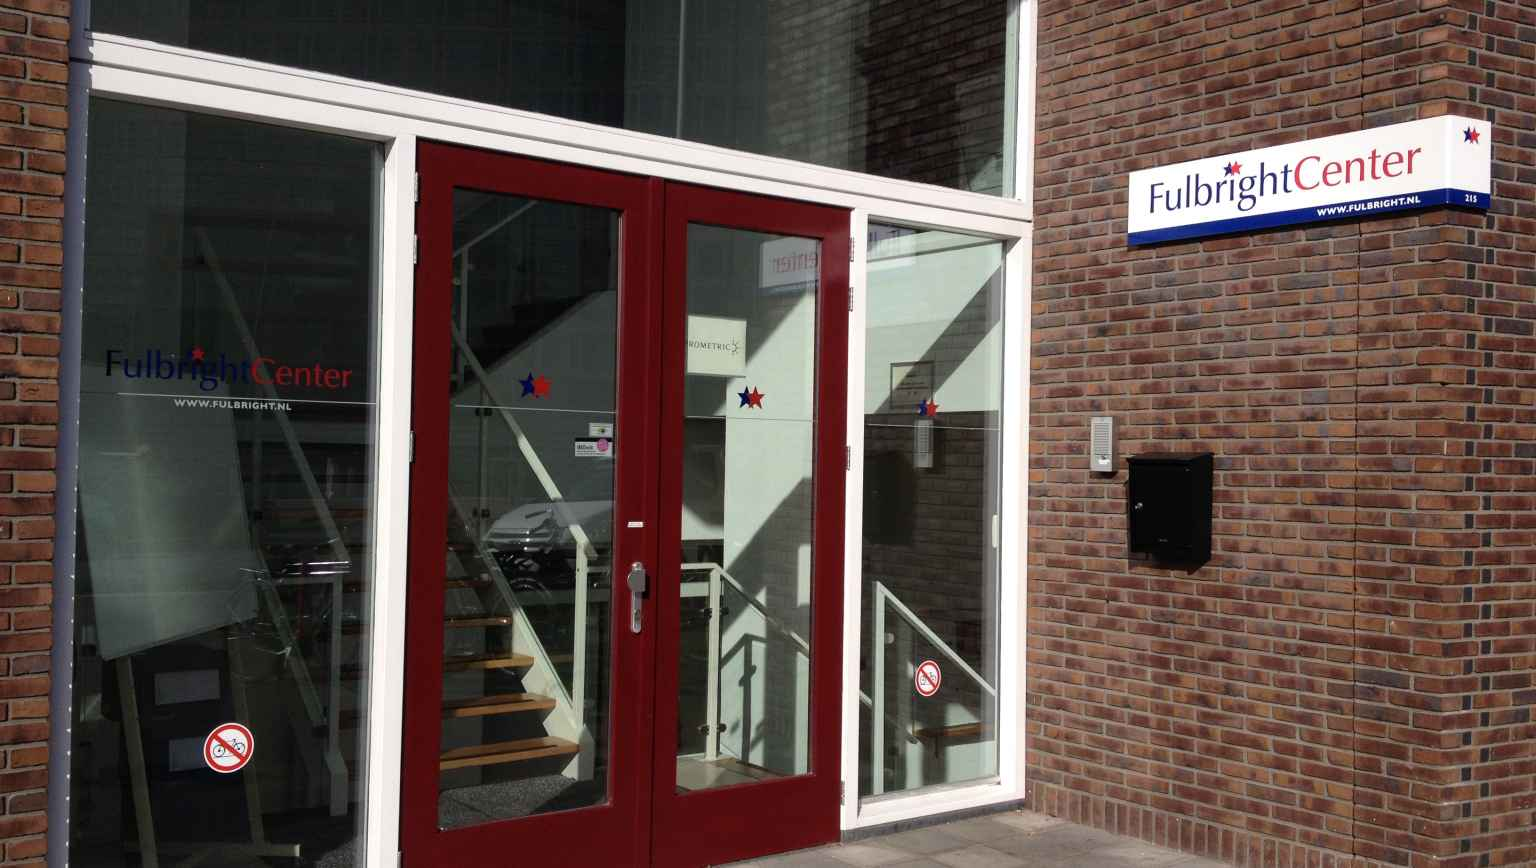 Fulbright Center Advising Center Entrance